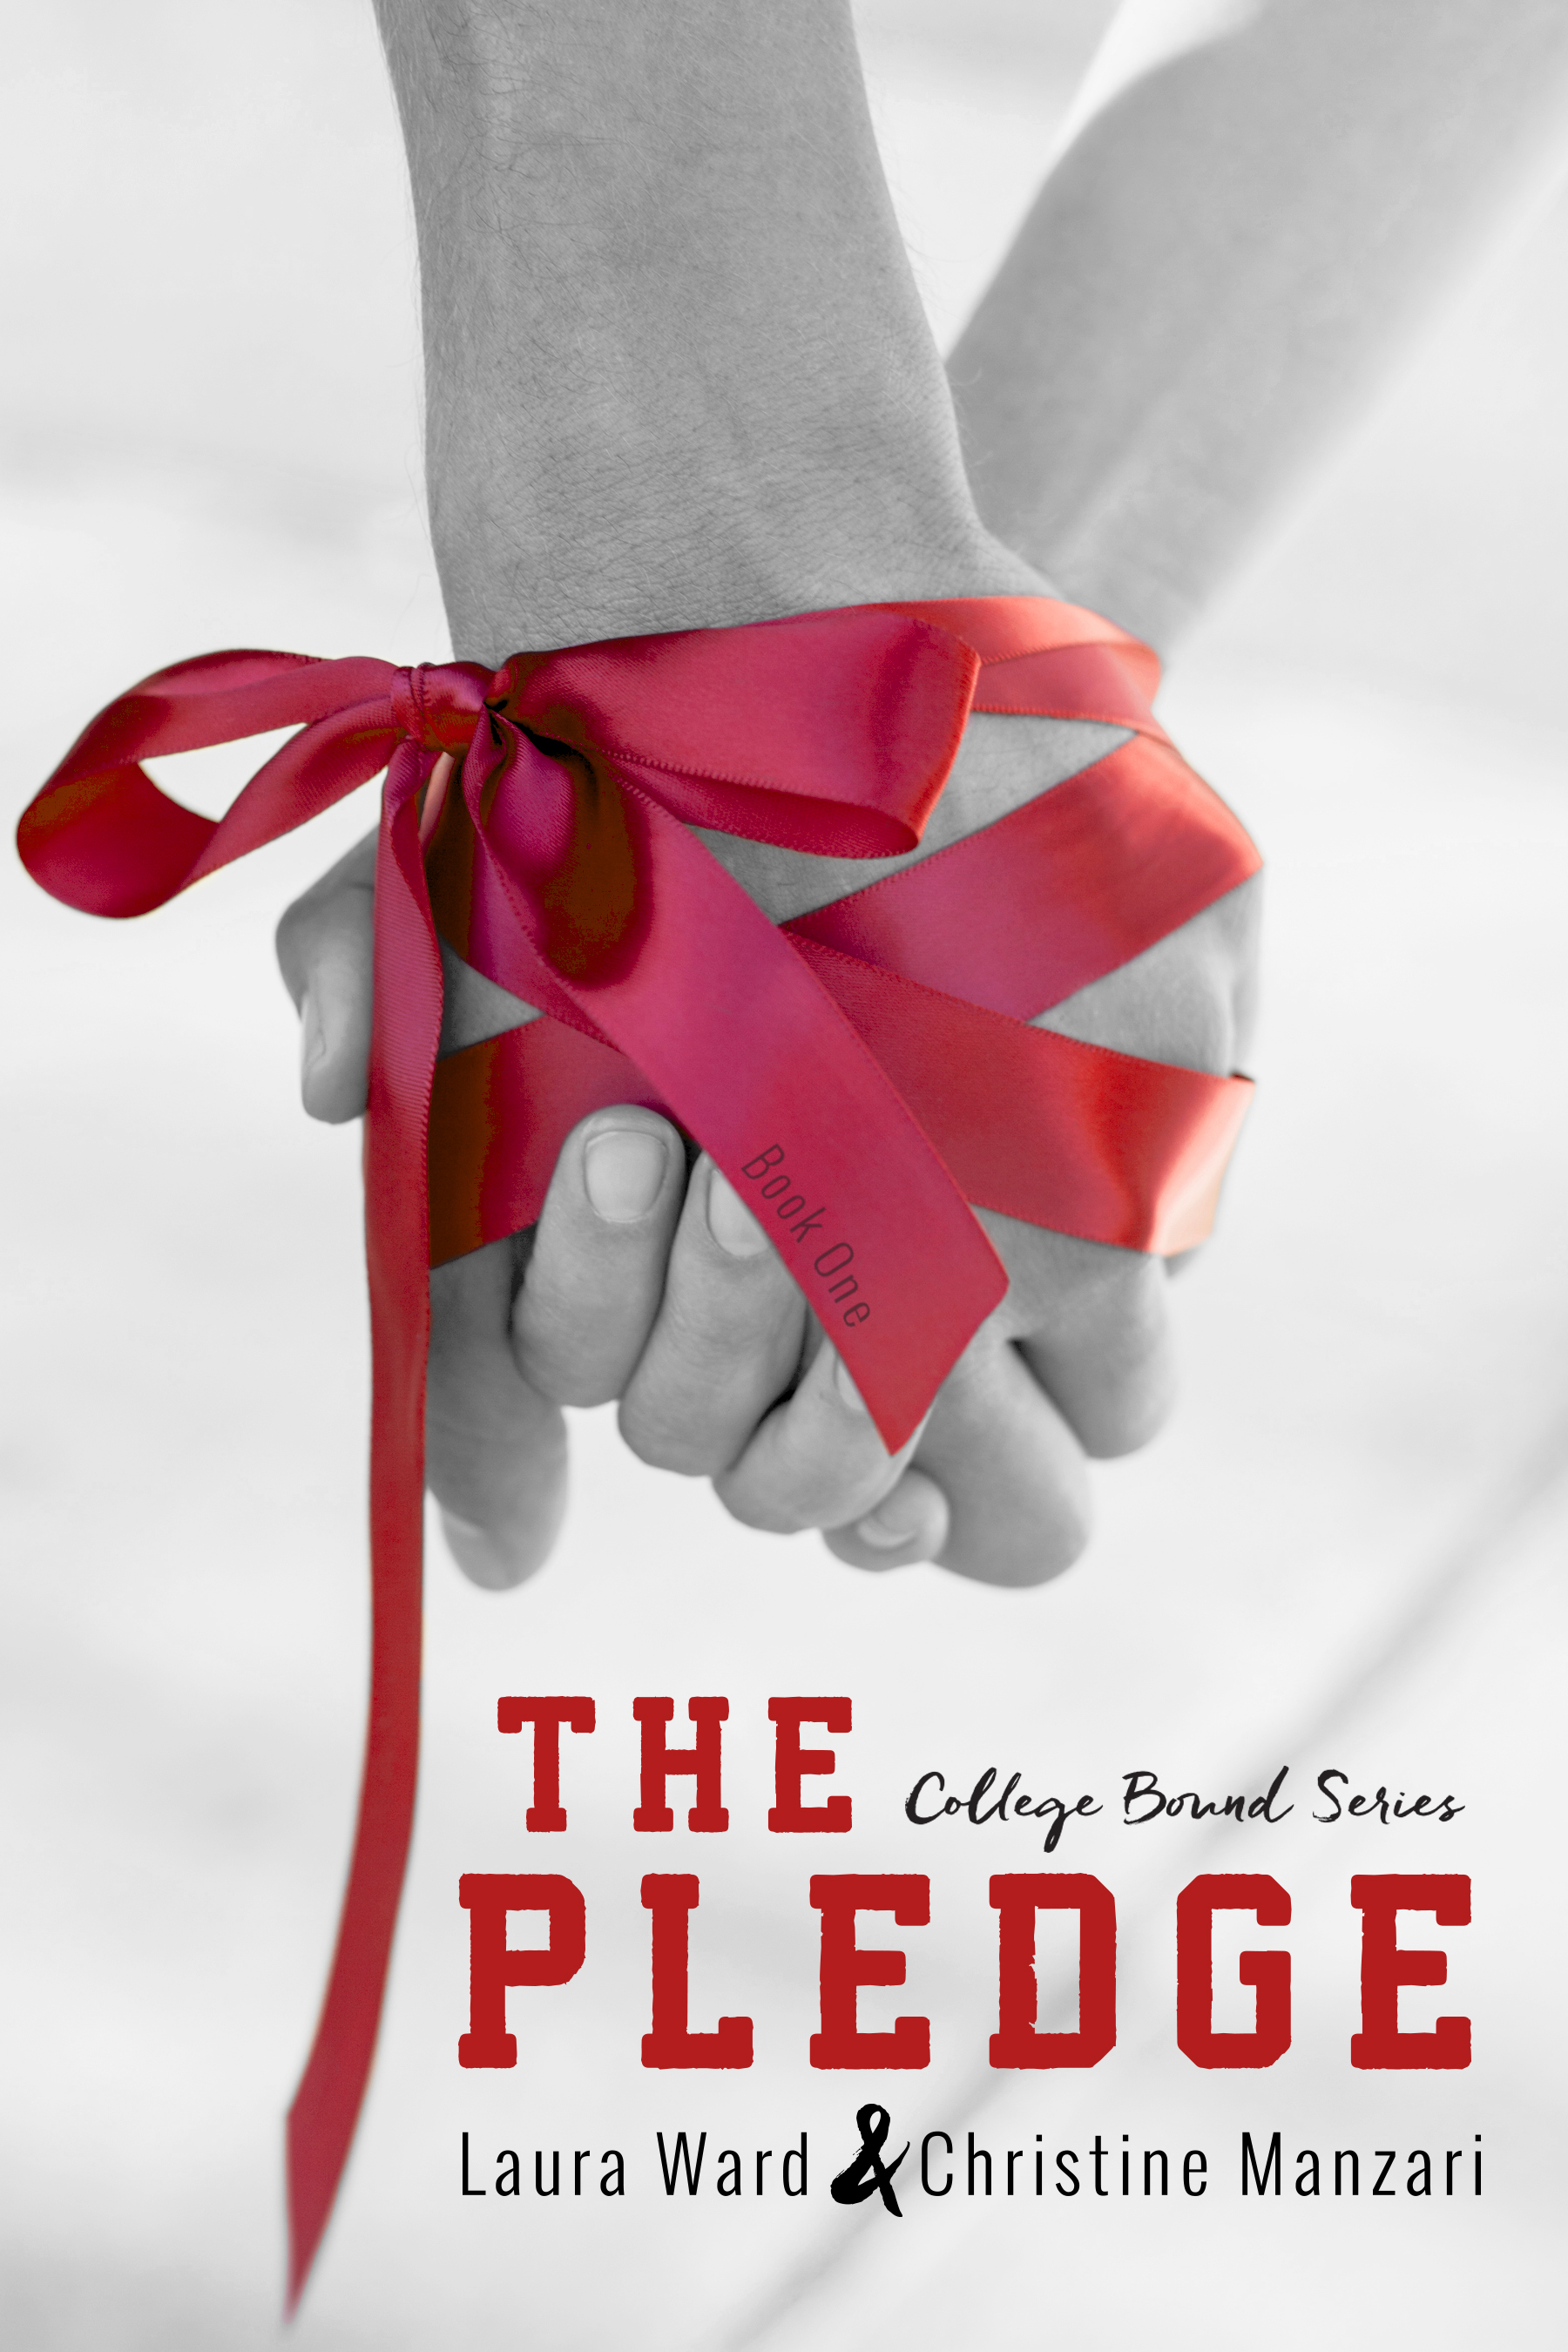 Blog Tour, Review & Giveaway: The Pledge (College Bound #1) by Laura Ward & Christine Manzari